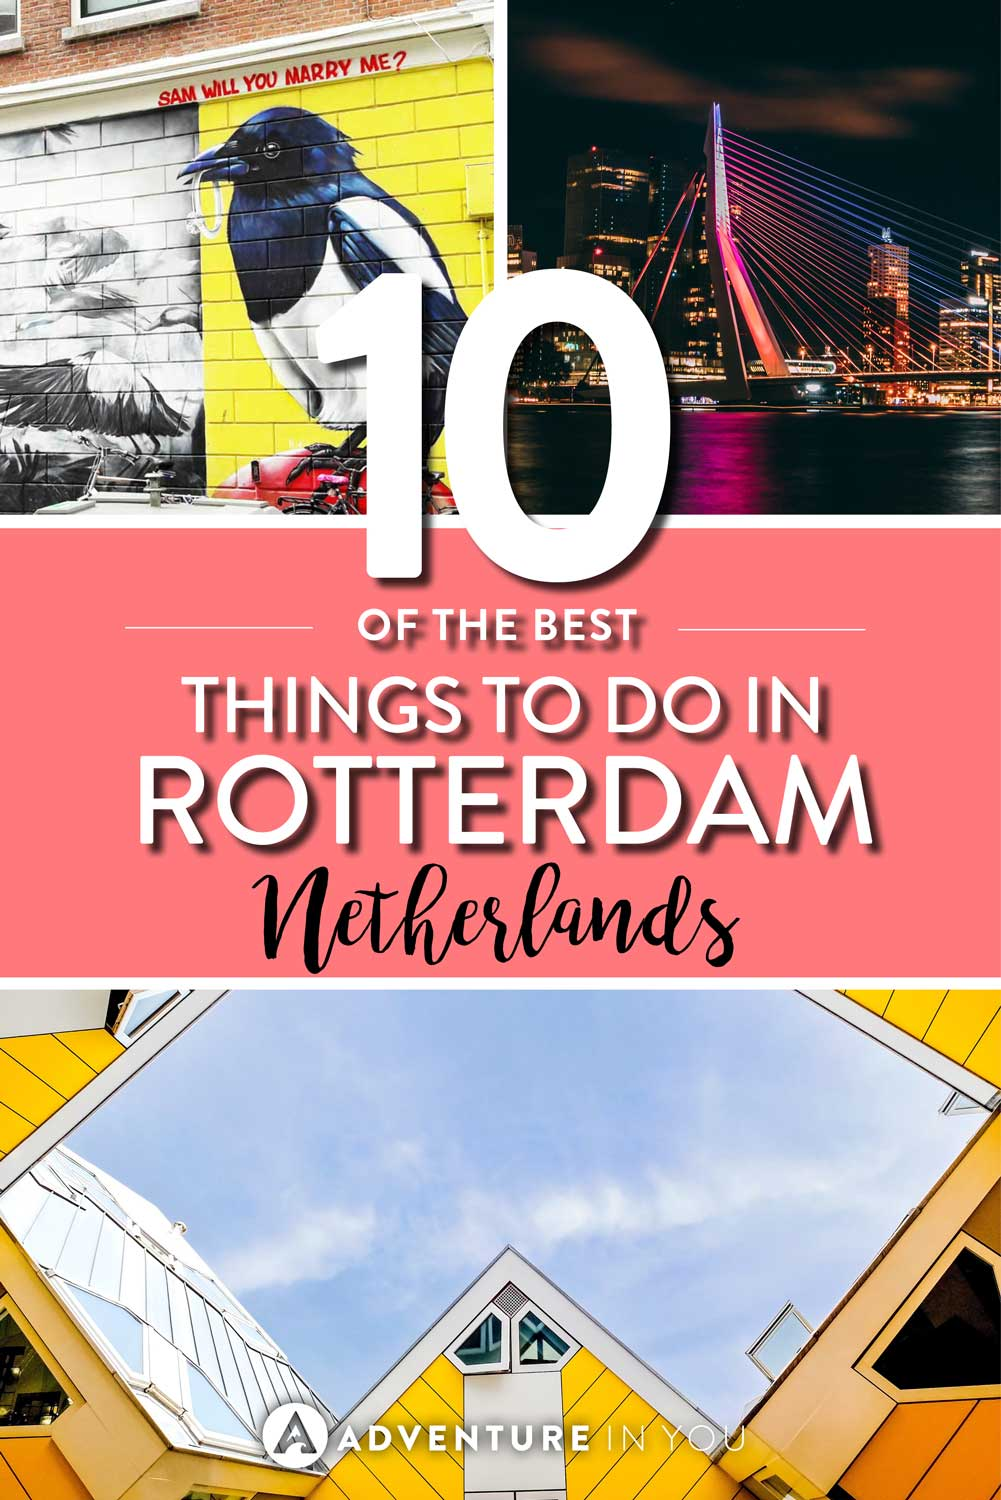 Rotterdam Netherlands | Looking for inspiration on the best things to do in Rotterdam? Our local guide gives us tips on the best things to see, where to eat, and the best attractions to see.